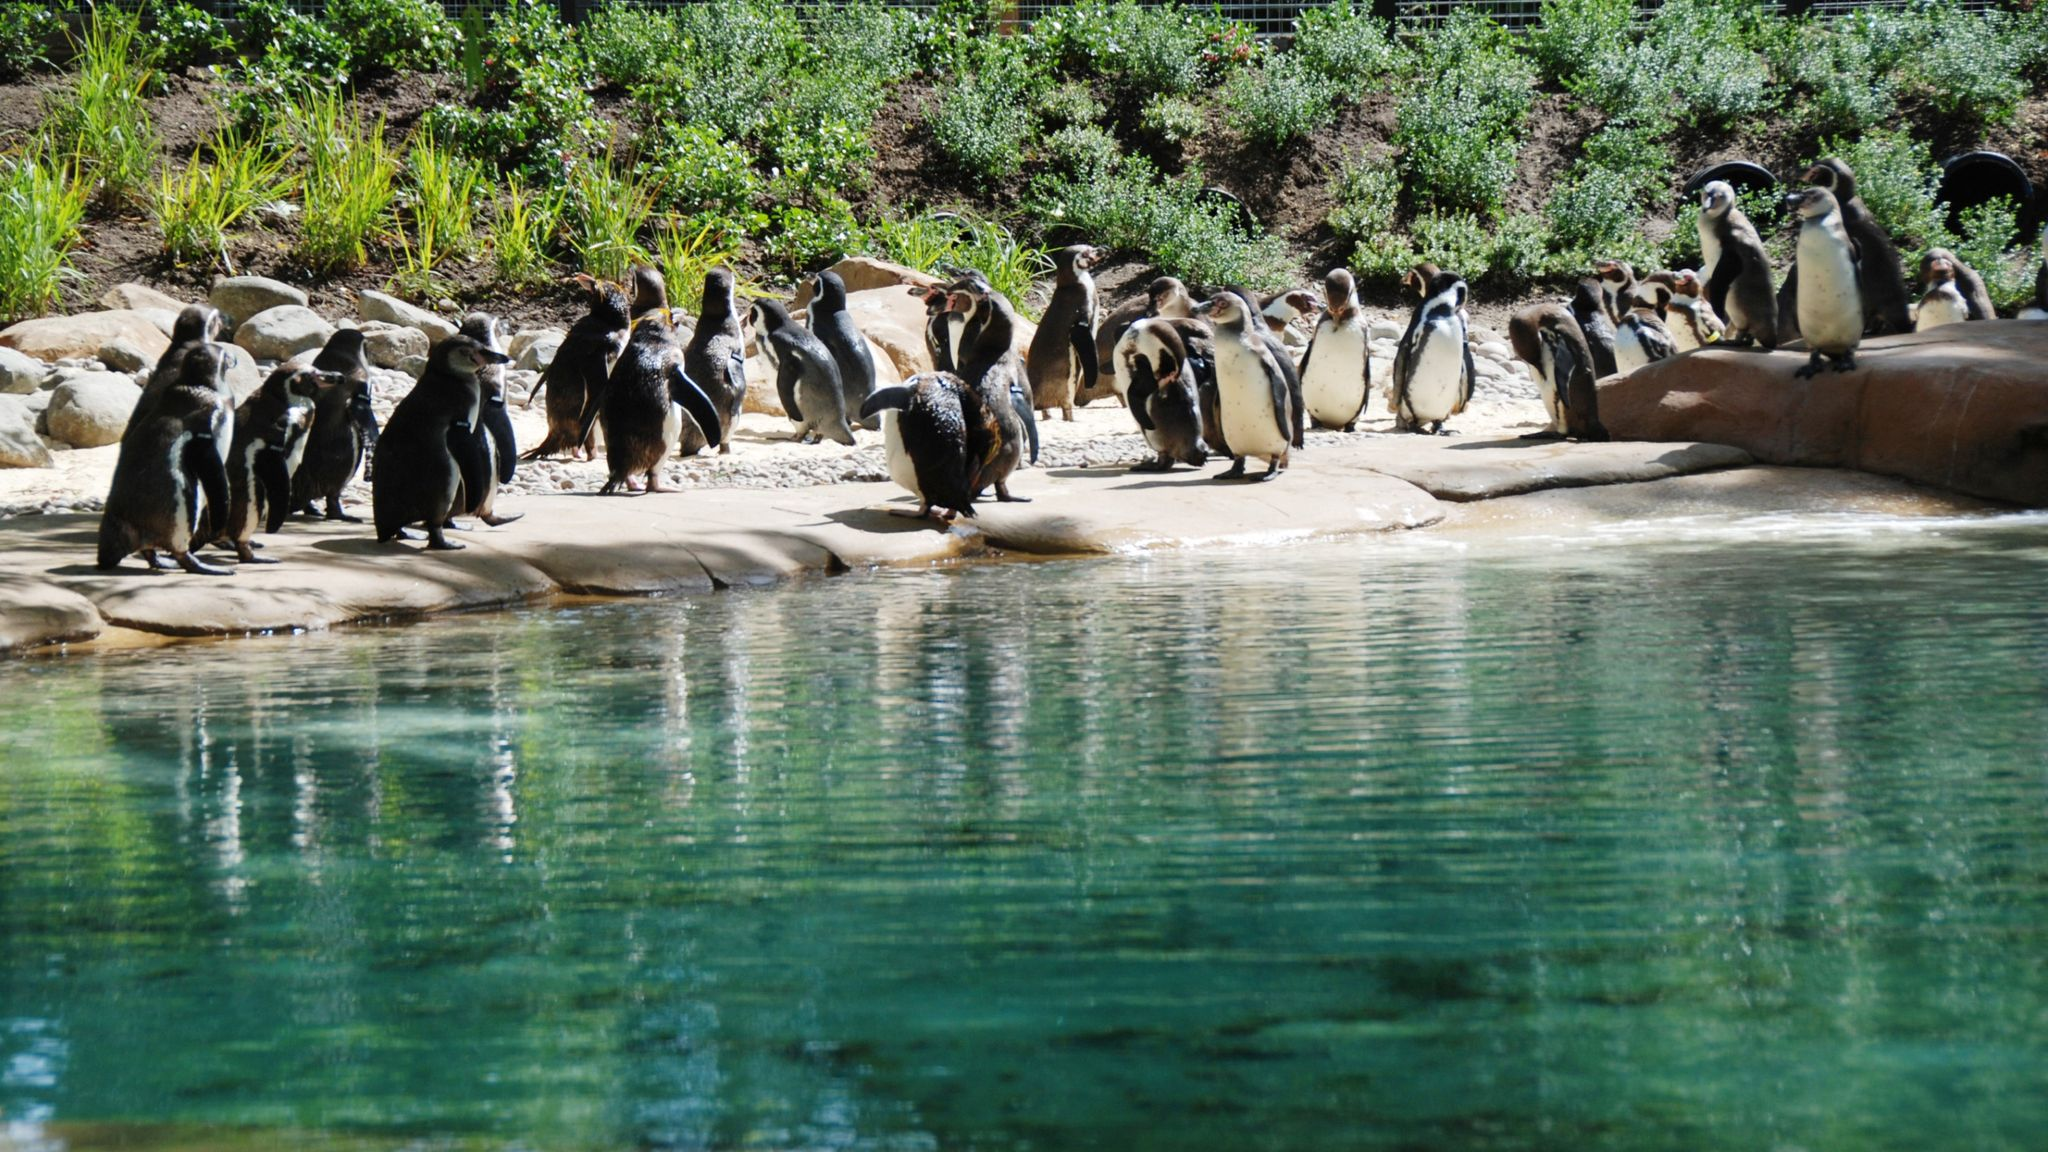 The future of penguins and many other animals at London Zoo will be uncertain if the site is forced to close